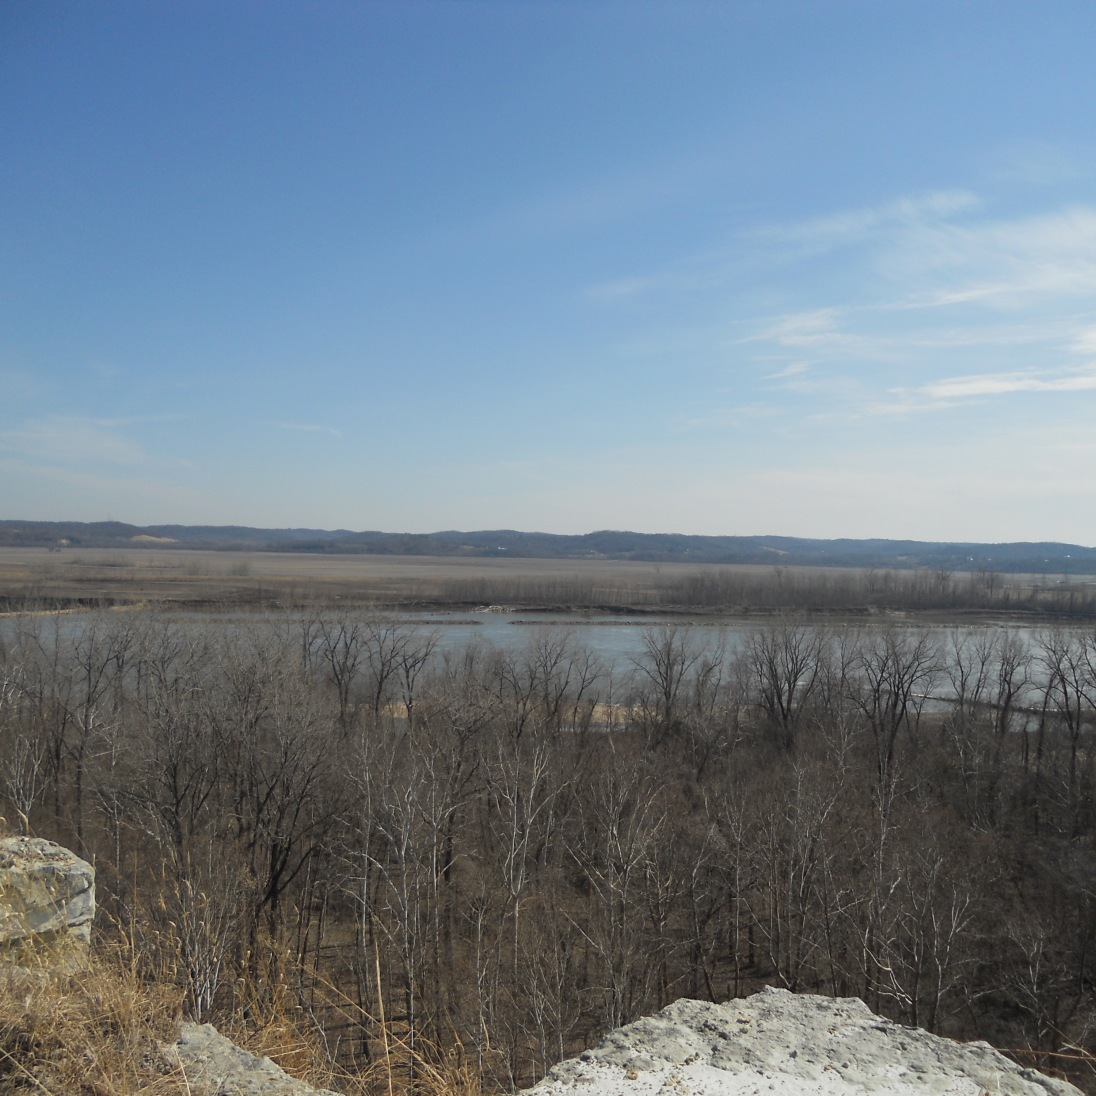 A view of the Missouri River valley from Klondike Park in Augusta, MO.